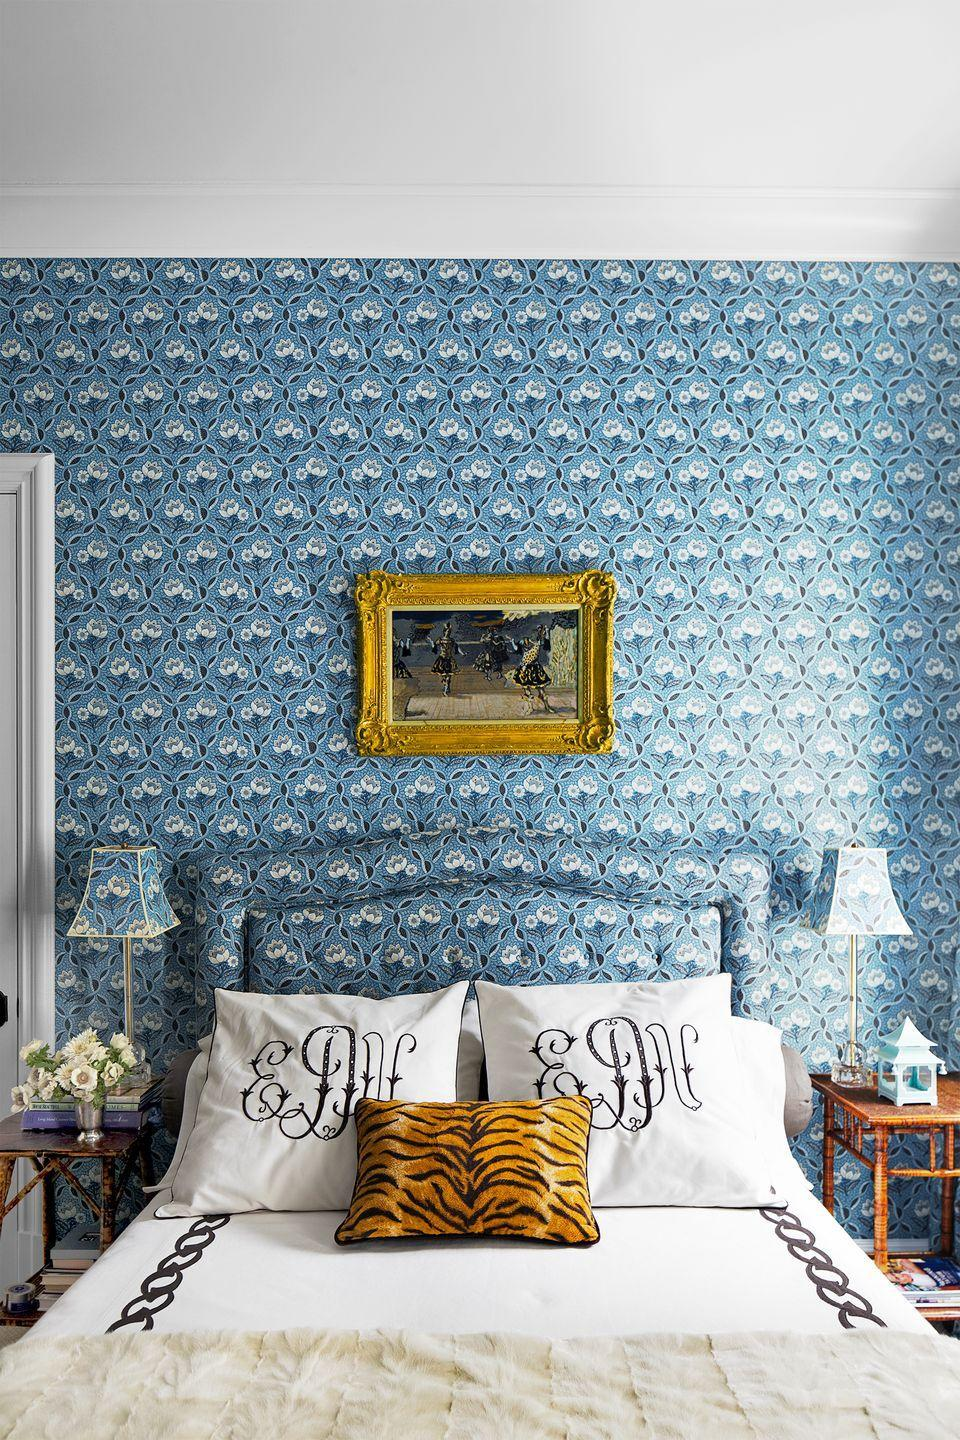 "<p><a href=""https://www.housebeautiful.com/design-inspiration/home-makeovers/tips/a2226/ellen-niven-interview-0514/"" rel=""nofollow noopener"" target=""_blank"" data-ylk=""slk:Ellen Niven"" class=""link rapid-noclick-resp"">Ellen Niven</a> took inspiration from traditional Provençal hotels, padding the walls, swathing the headboard and lampshades at her Long Island home in Le Manach's Balmoral blue floral pattern, and hanging a gilt frame. The monogrammed pillows mark a personal touch while the tiger-print throw spices the room up. </p>"